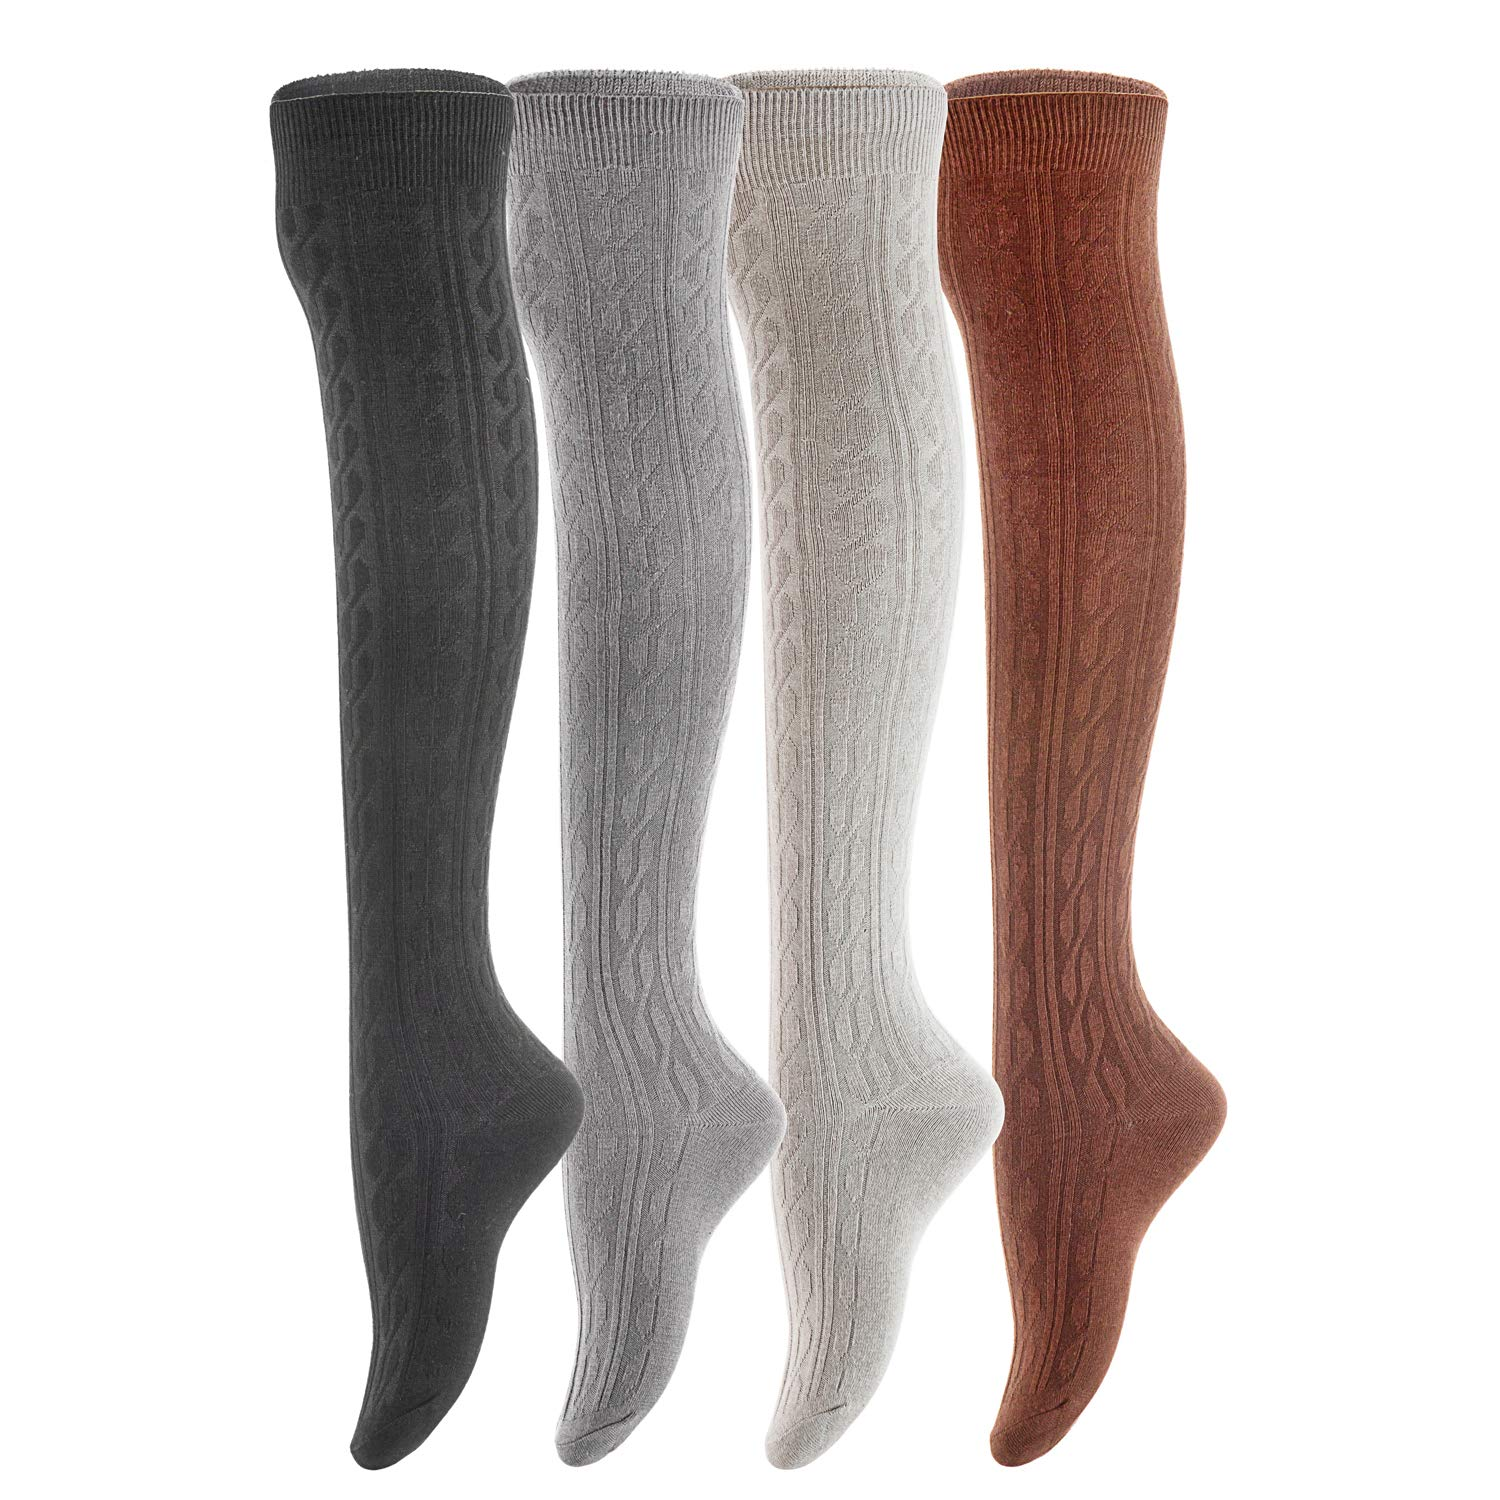 Extra Wide Fit Size 4-7 BRAND NEW RRP £12 Ladies LOVEYOURS socks 4x Pairs